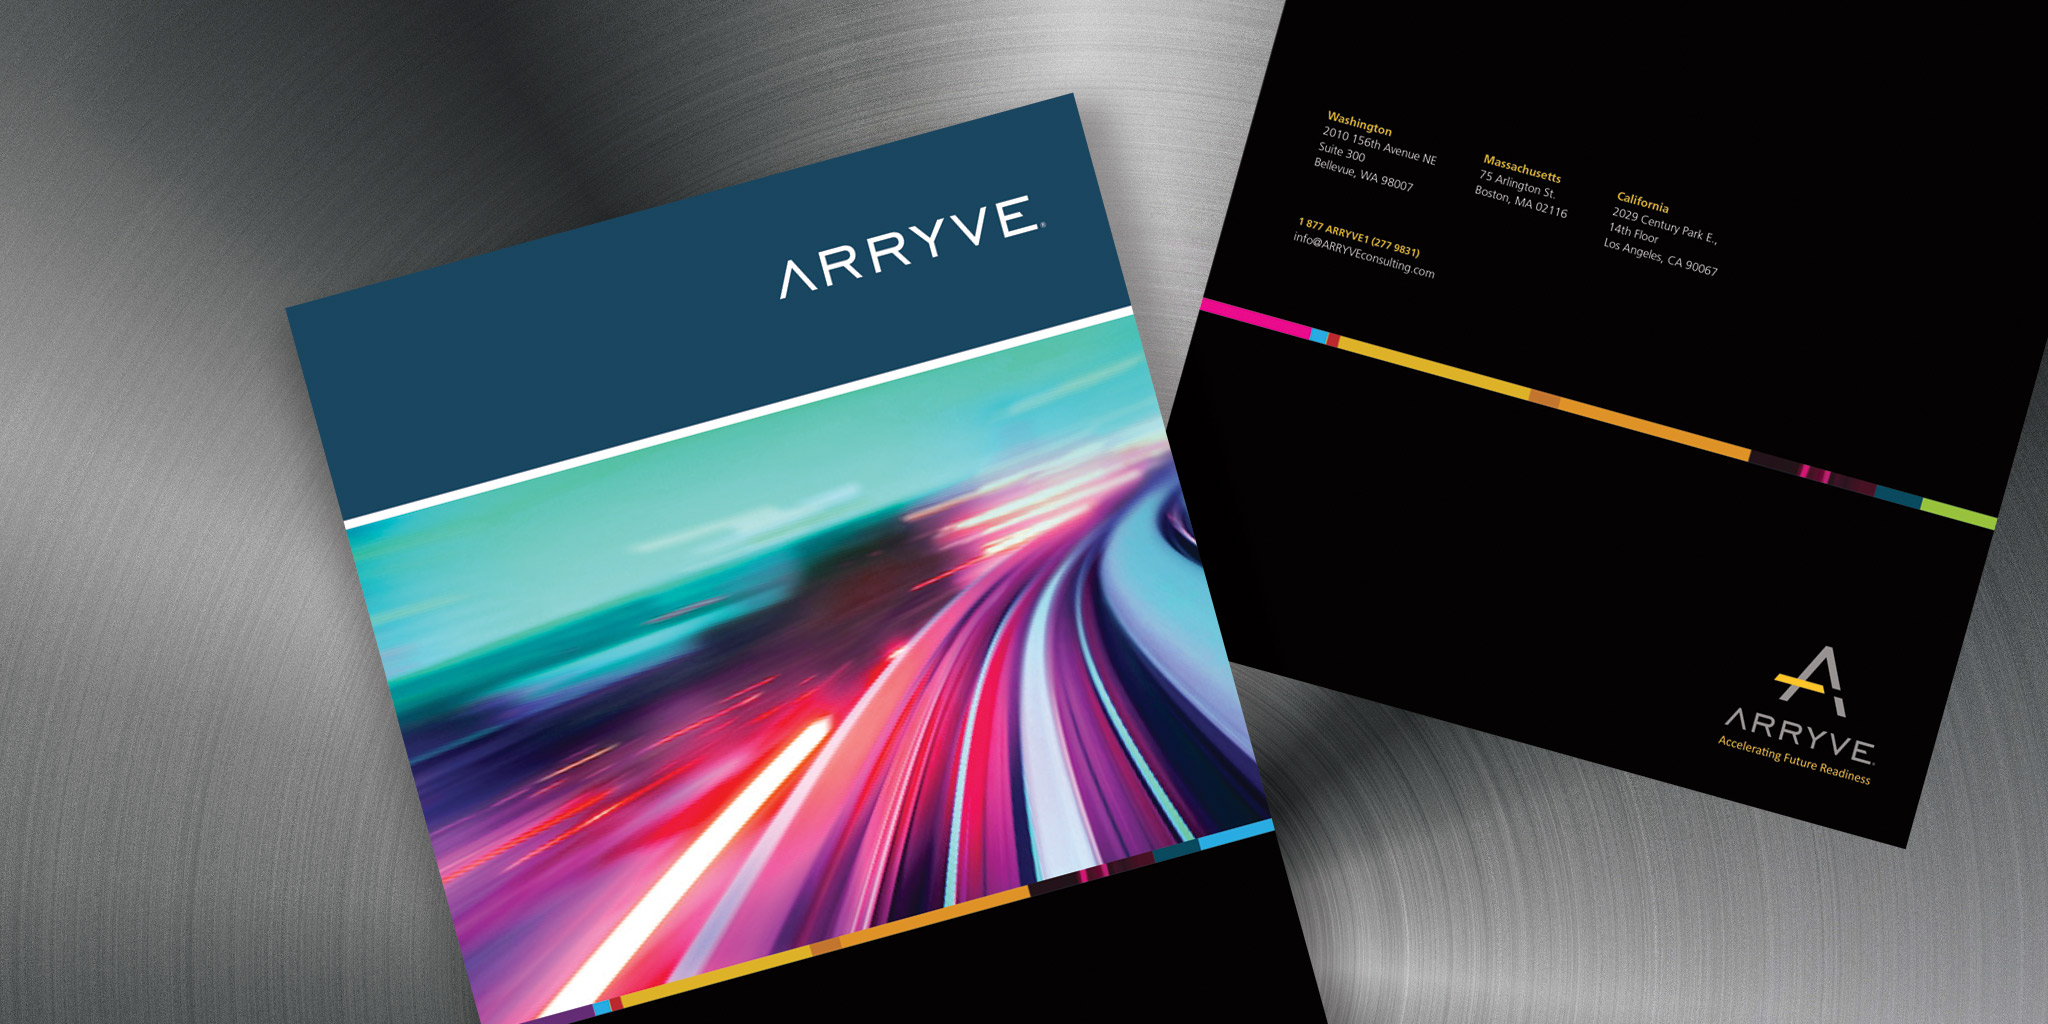 FOLDER  Arryve Consulting / Ardent Sage  This elegant and dynamic folder is one of many new collateral pieces produced with our partners Ardent Sage for the consulting firm in Bellevue, Arryve. Their intelligent and thought-provoking approach in helping clients do everything better, needed to have a sense of future-forward energy. The bold color palette, motion imagery and minimalistic message conveyed much with a little.